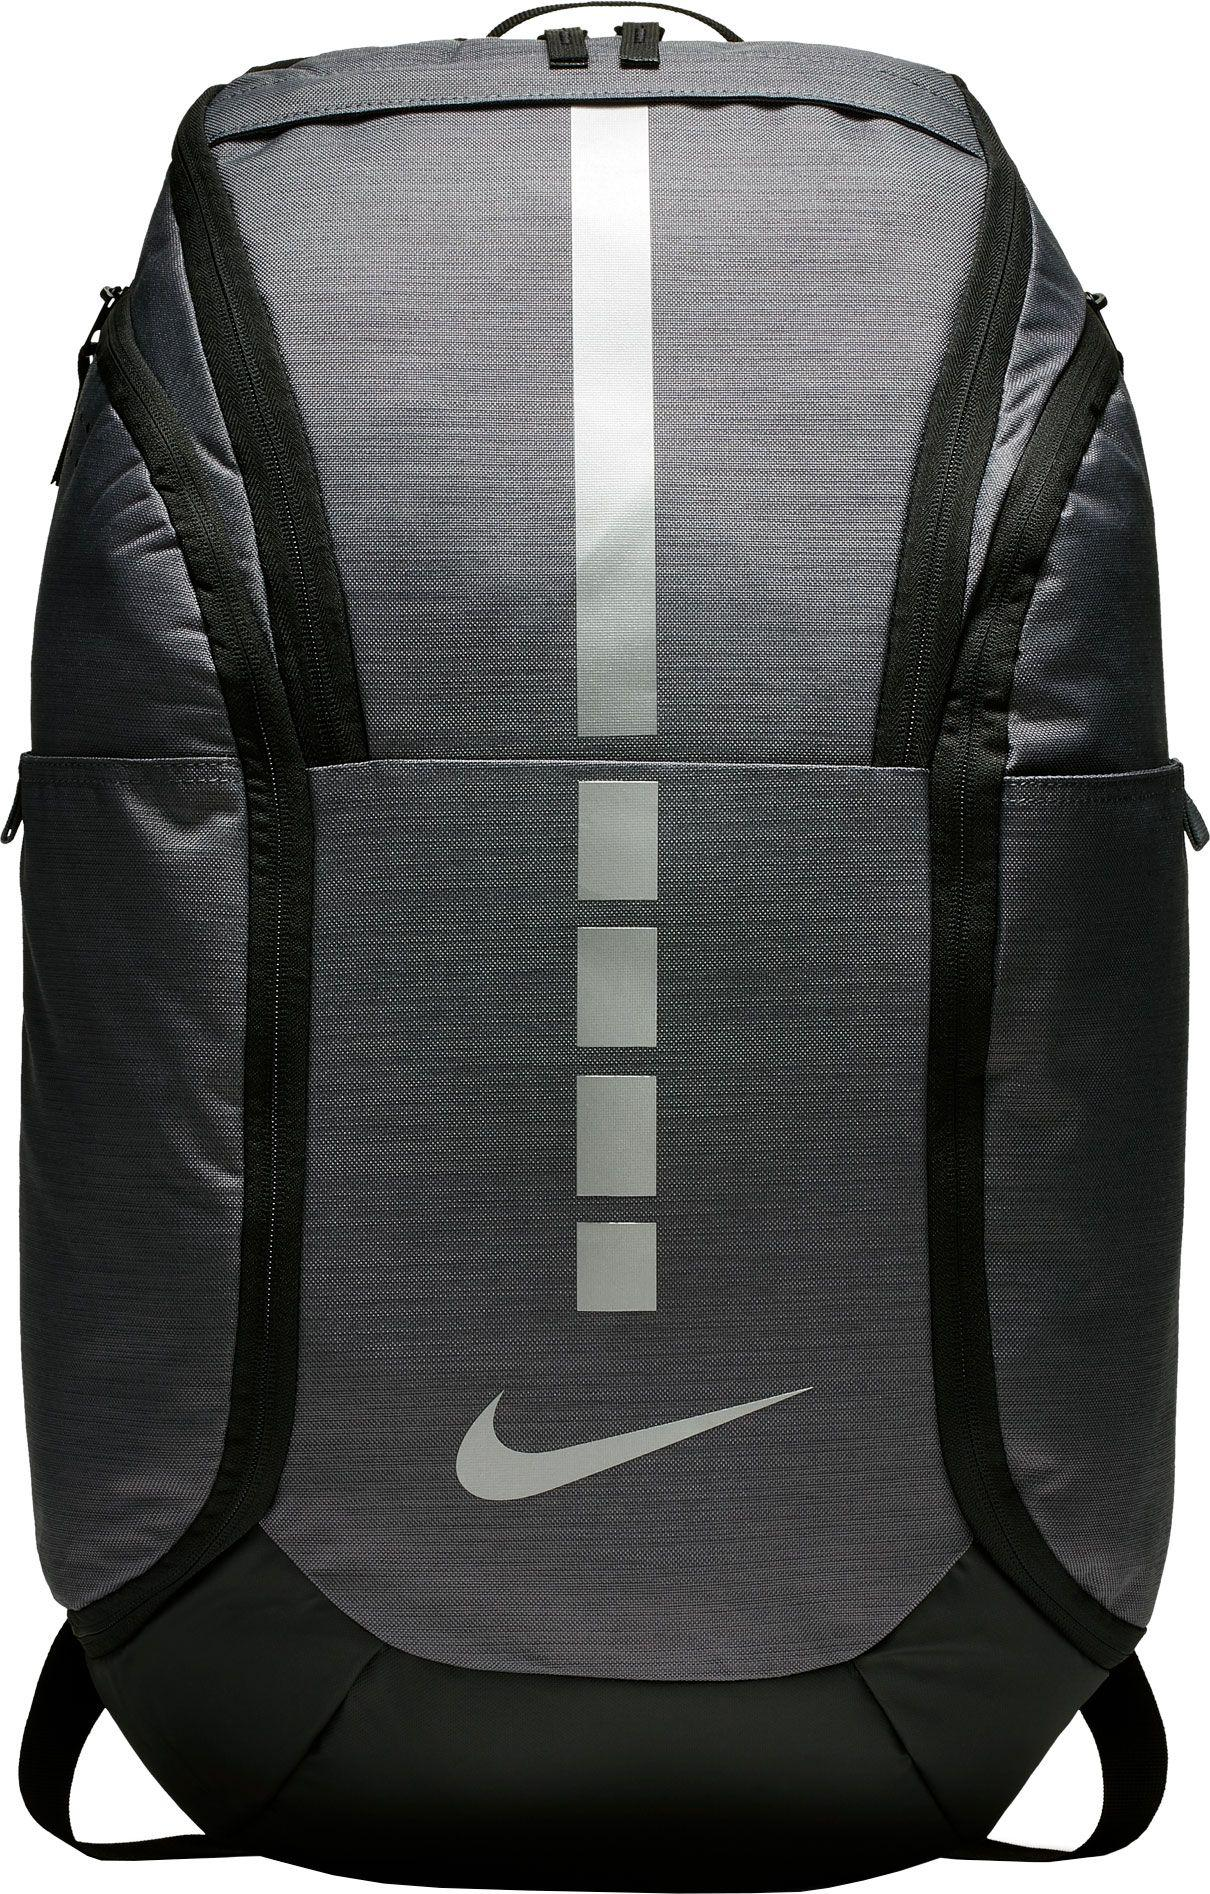 Nike - Multicolor Hoops Elite Pro Basketball Backpack for Men - Lyst 2582522fad2b5